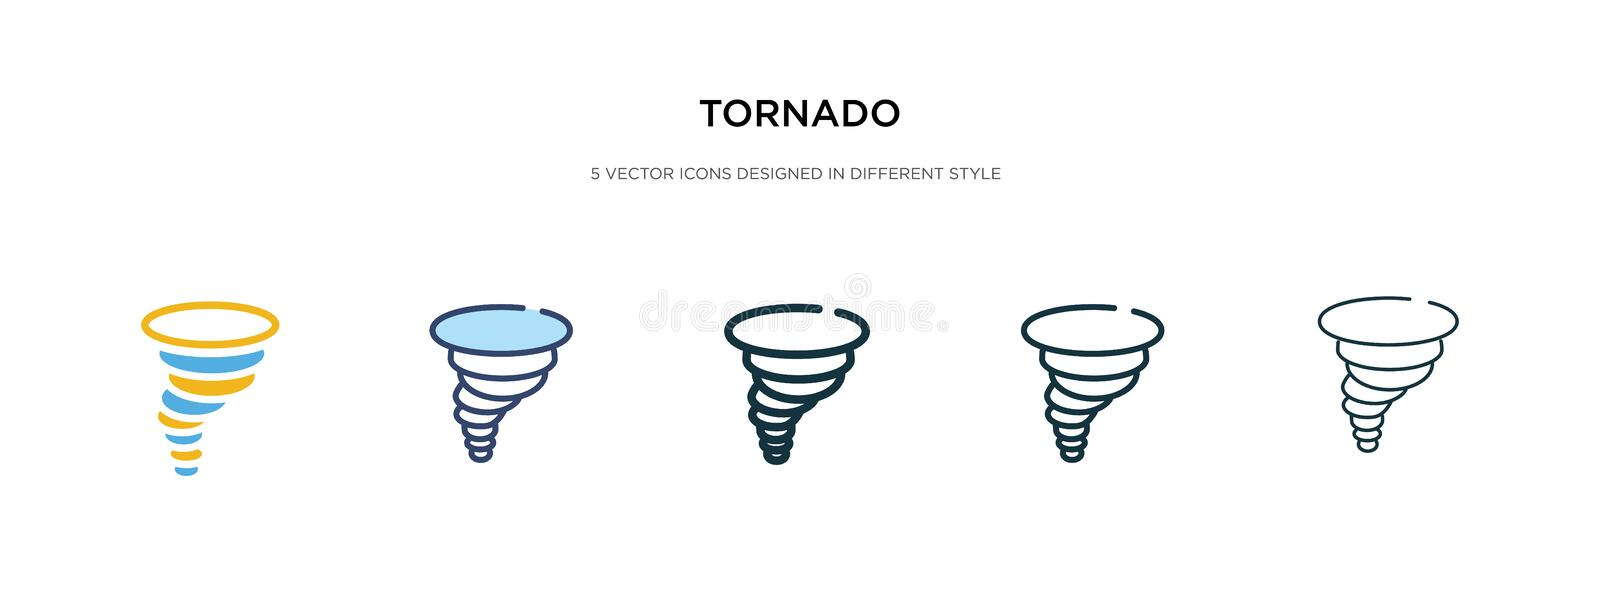 Tornado icon in different style vector illustration. two colored and black tornado vector icons designed in filled, outline, line stock illustration